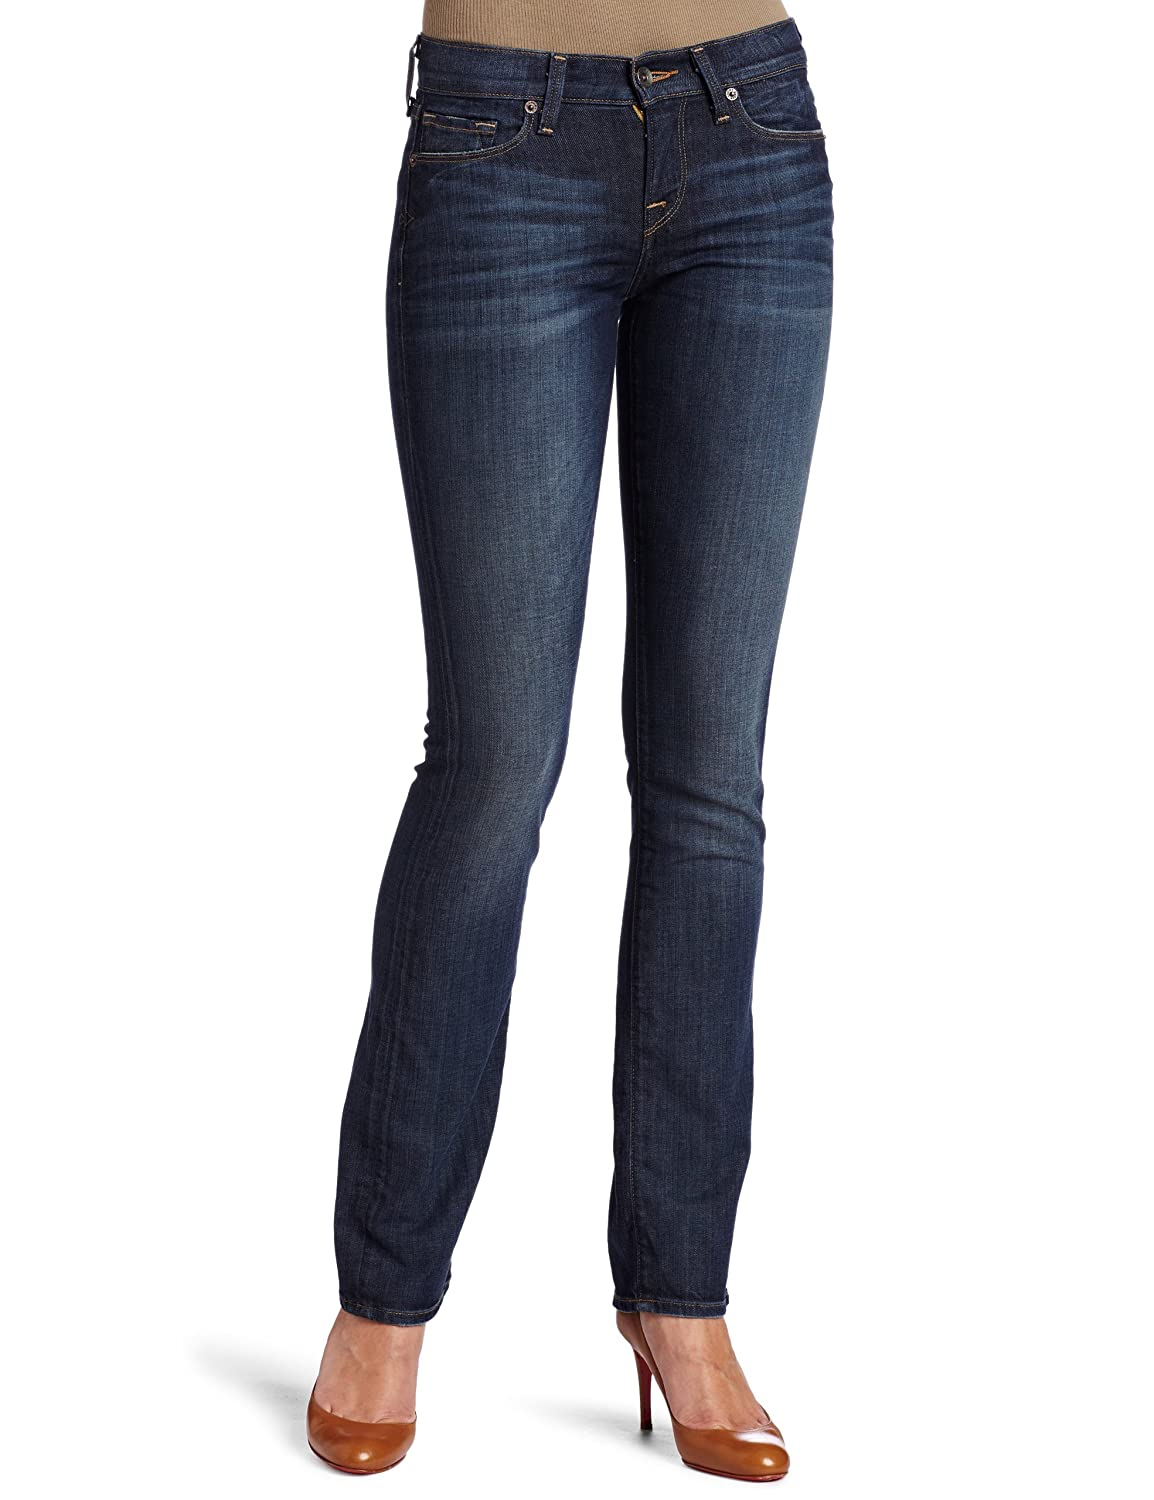 50% Off Men's and Women's Lucky Brand Jeans